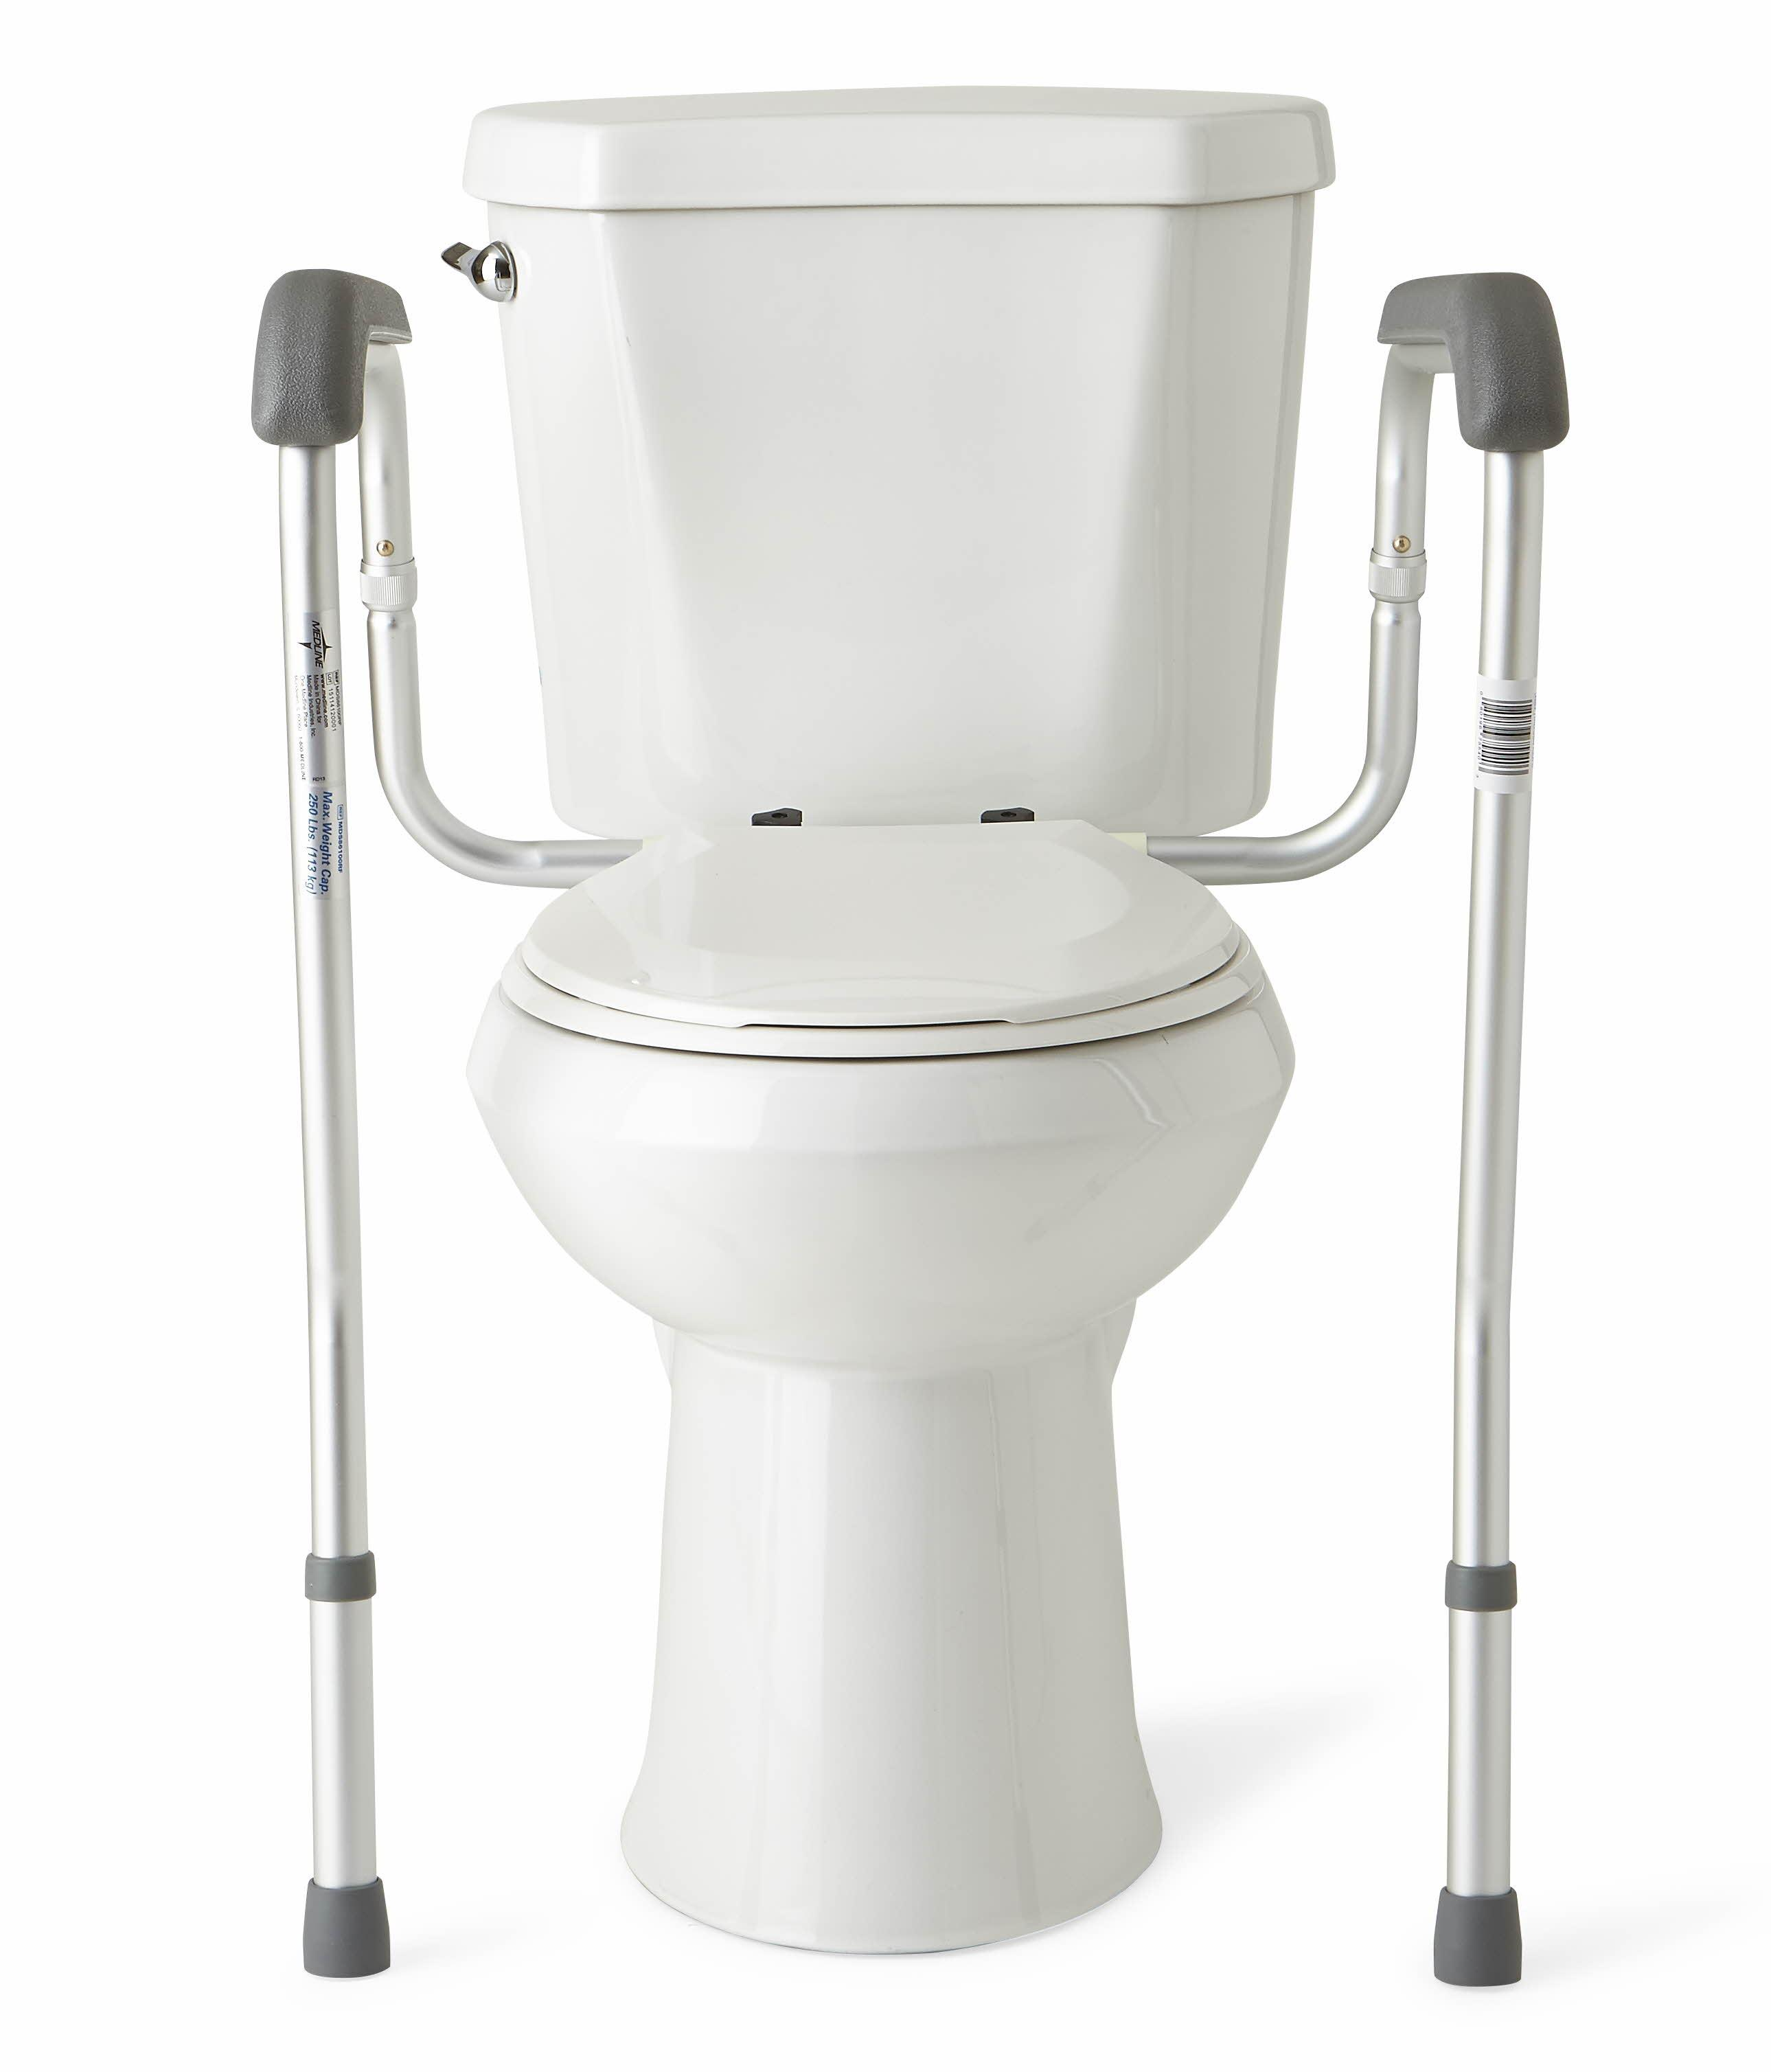 medline toilet safety rails health personal care